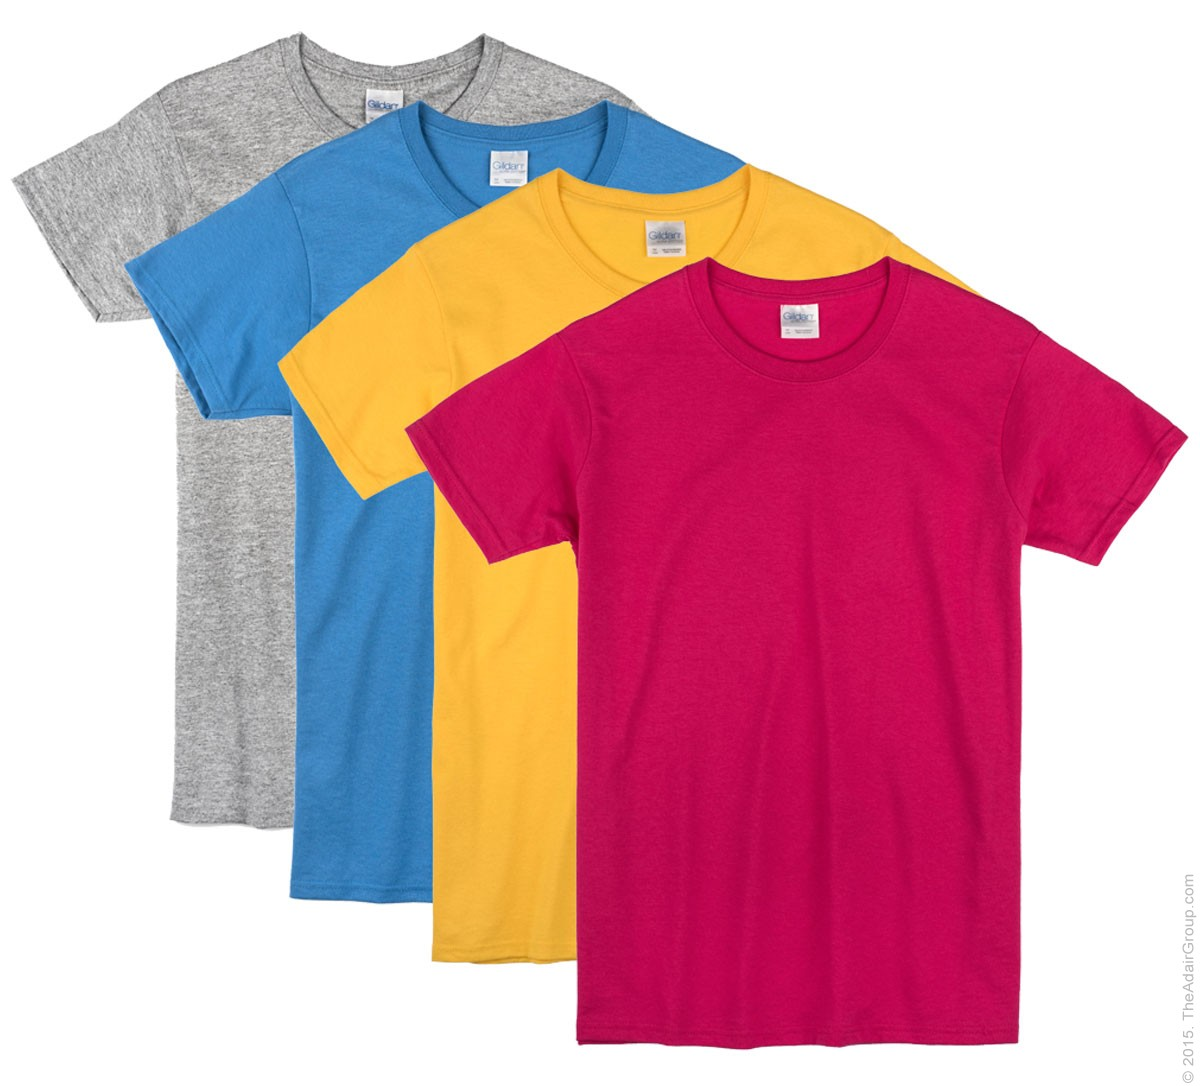 Wholesale tee shirts artee shirt for Printed t shirts in bulk